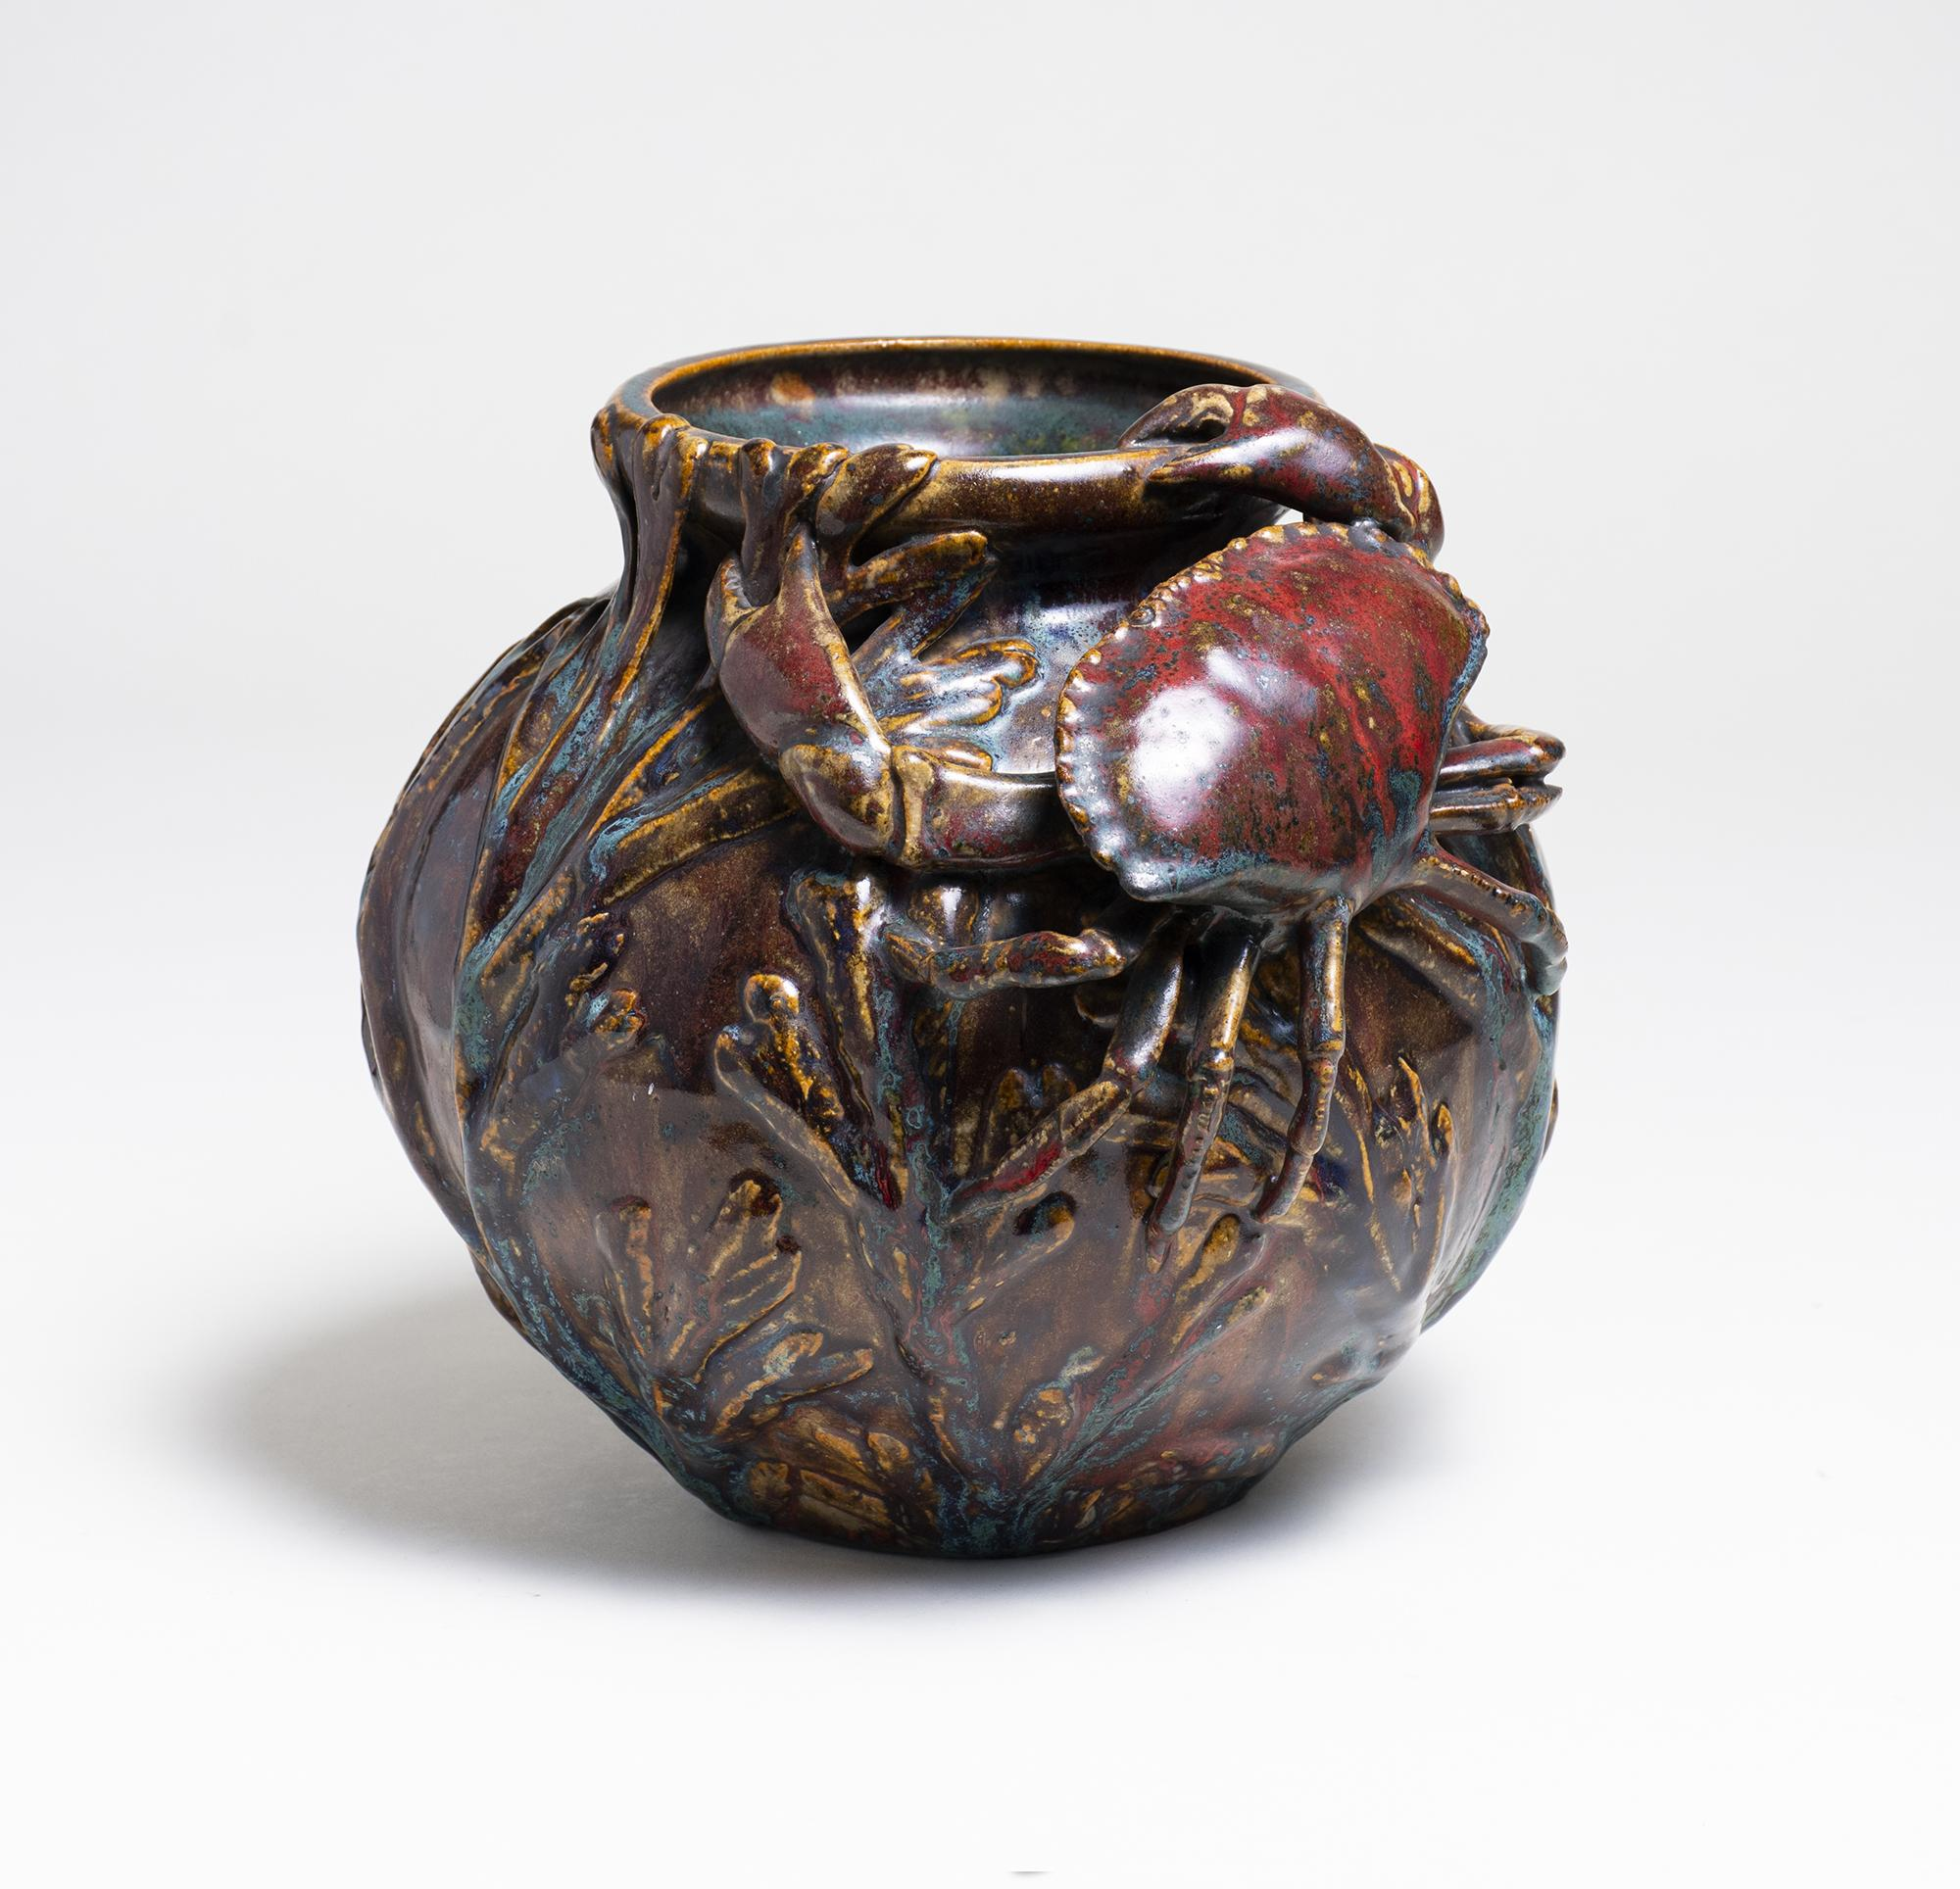 Pierre-Adrien Dalpayrat Vase with Applied Crab and Seaweed 1